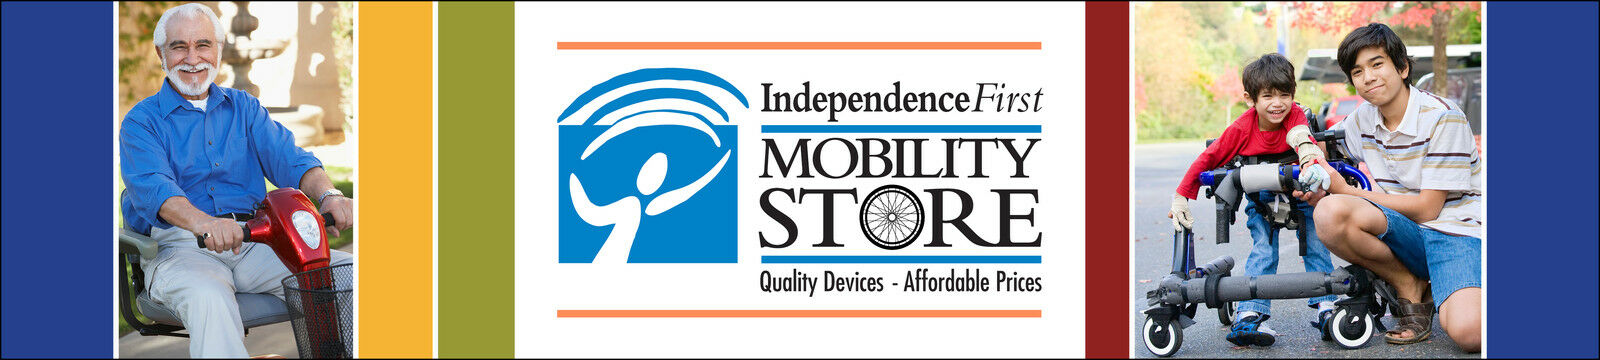 IndependenceFirst Mobility Store